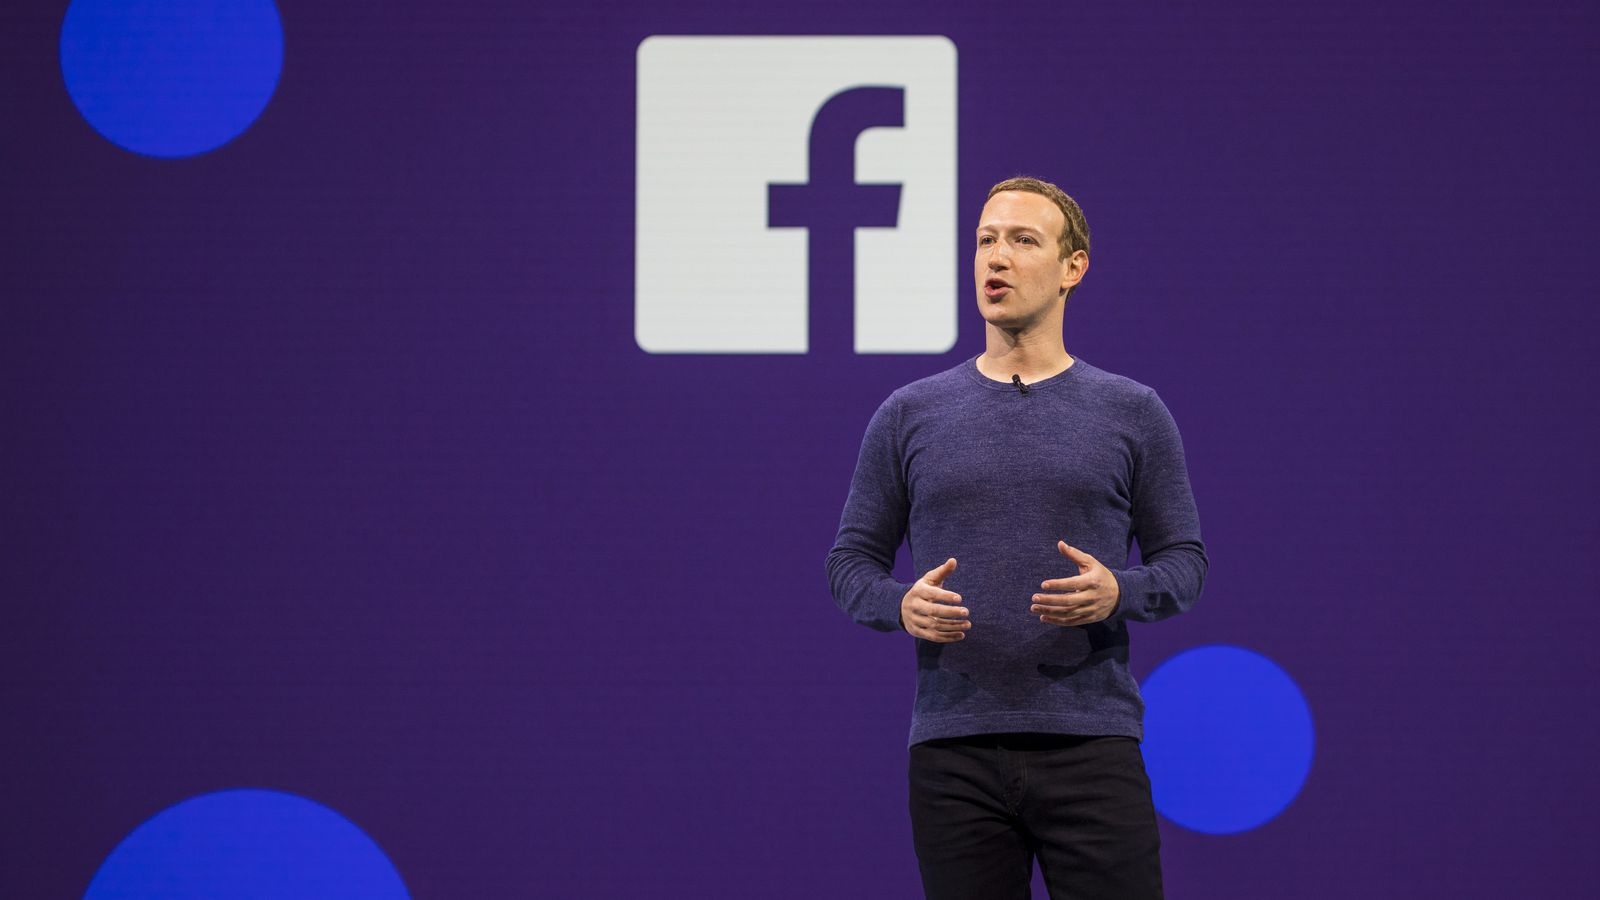 The Social Media Pulse: F8 Conference Round-Up